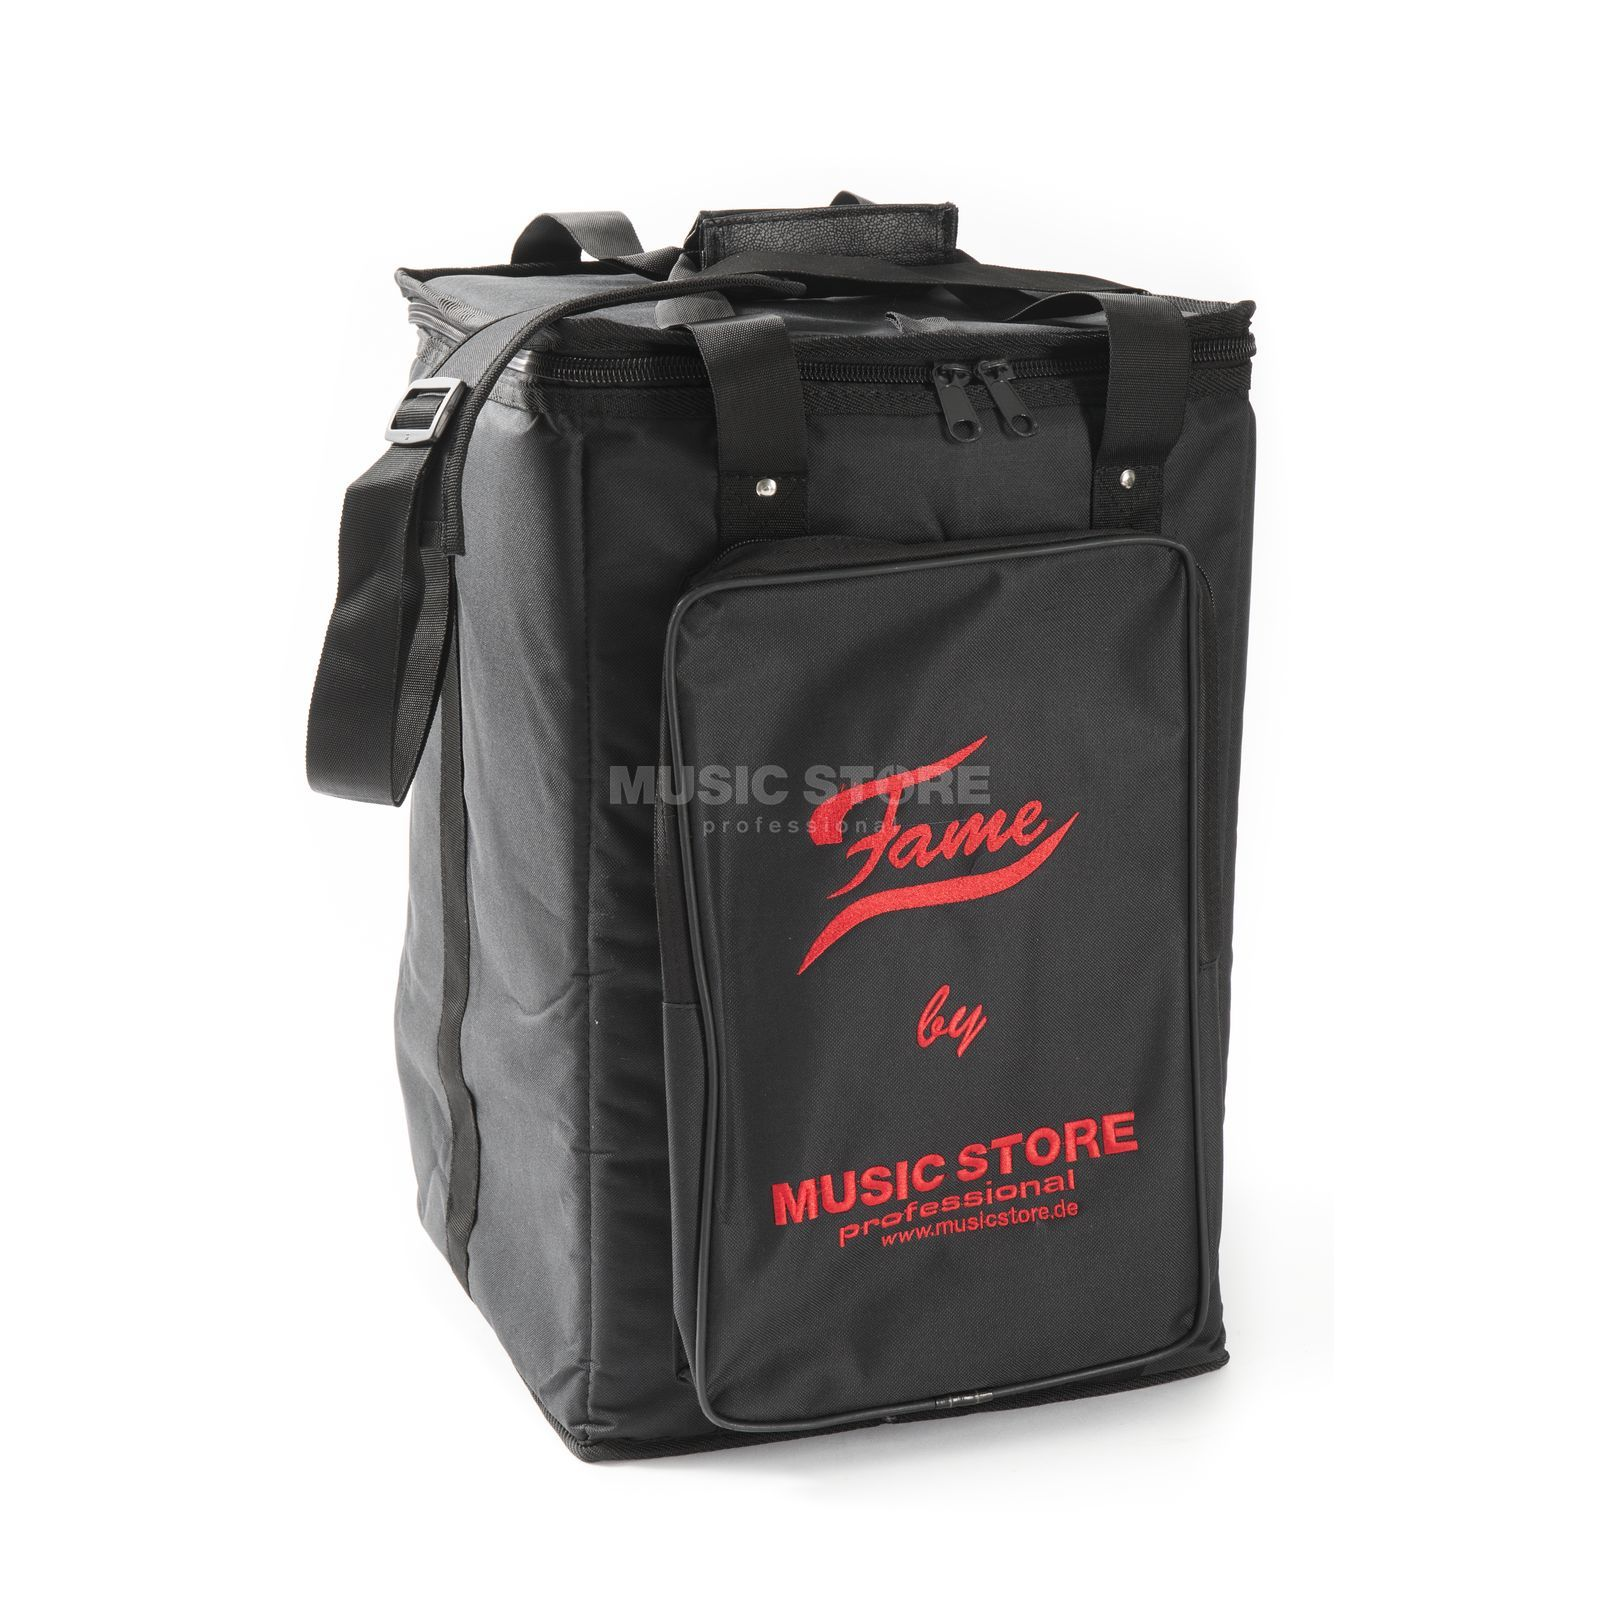 Fame Cajon Bag Travel Back-Pack Immagine prodotto